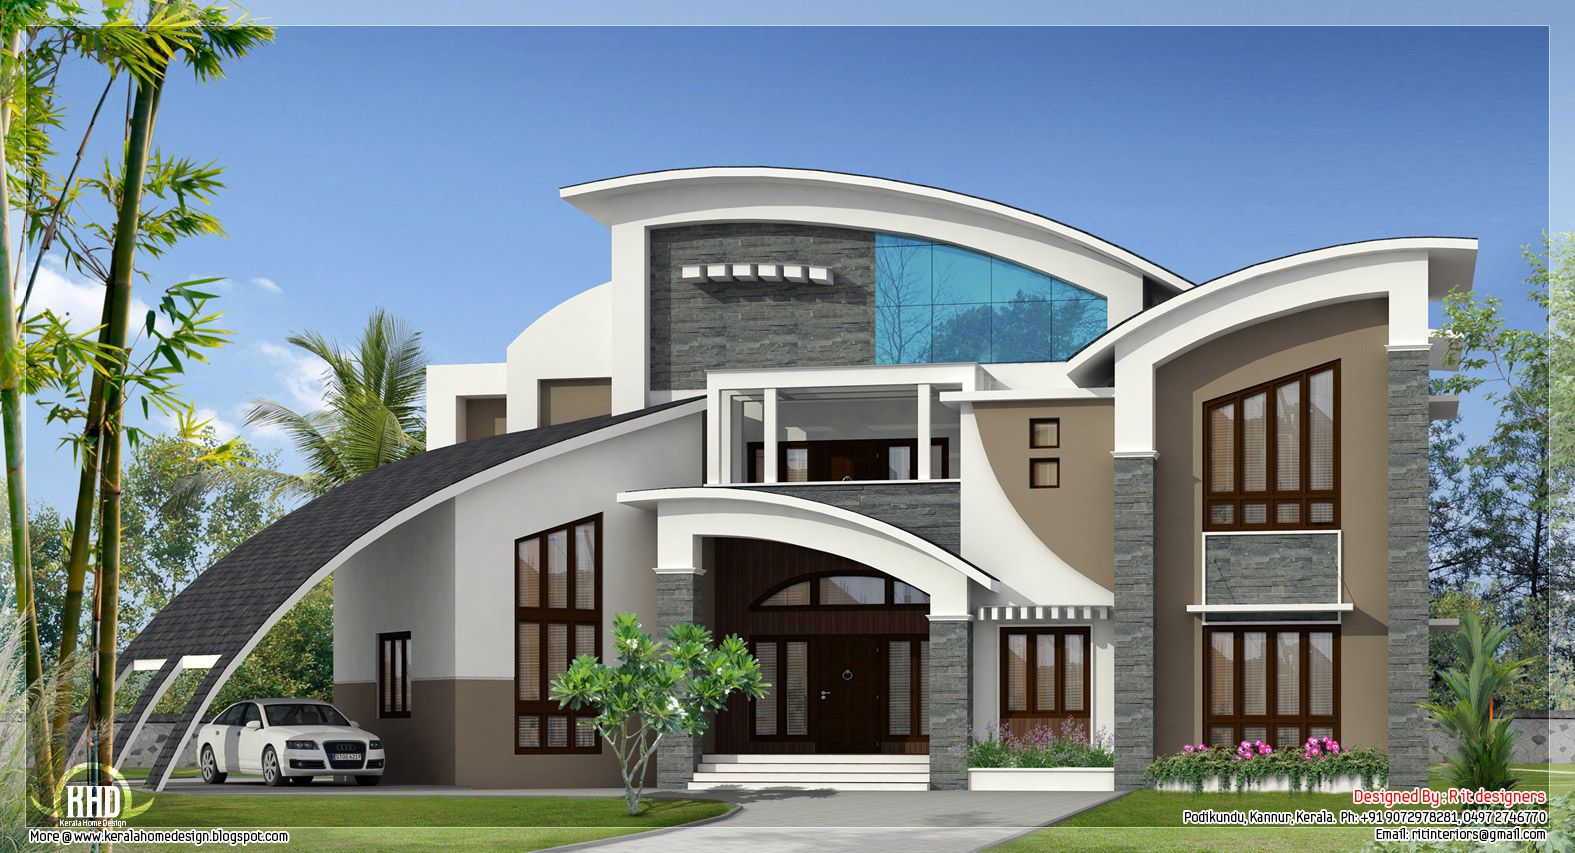 1x1trans unique kerala style home design with kerala house plans wow design homes pinterest home design kerala and house